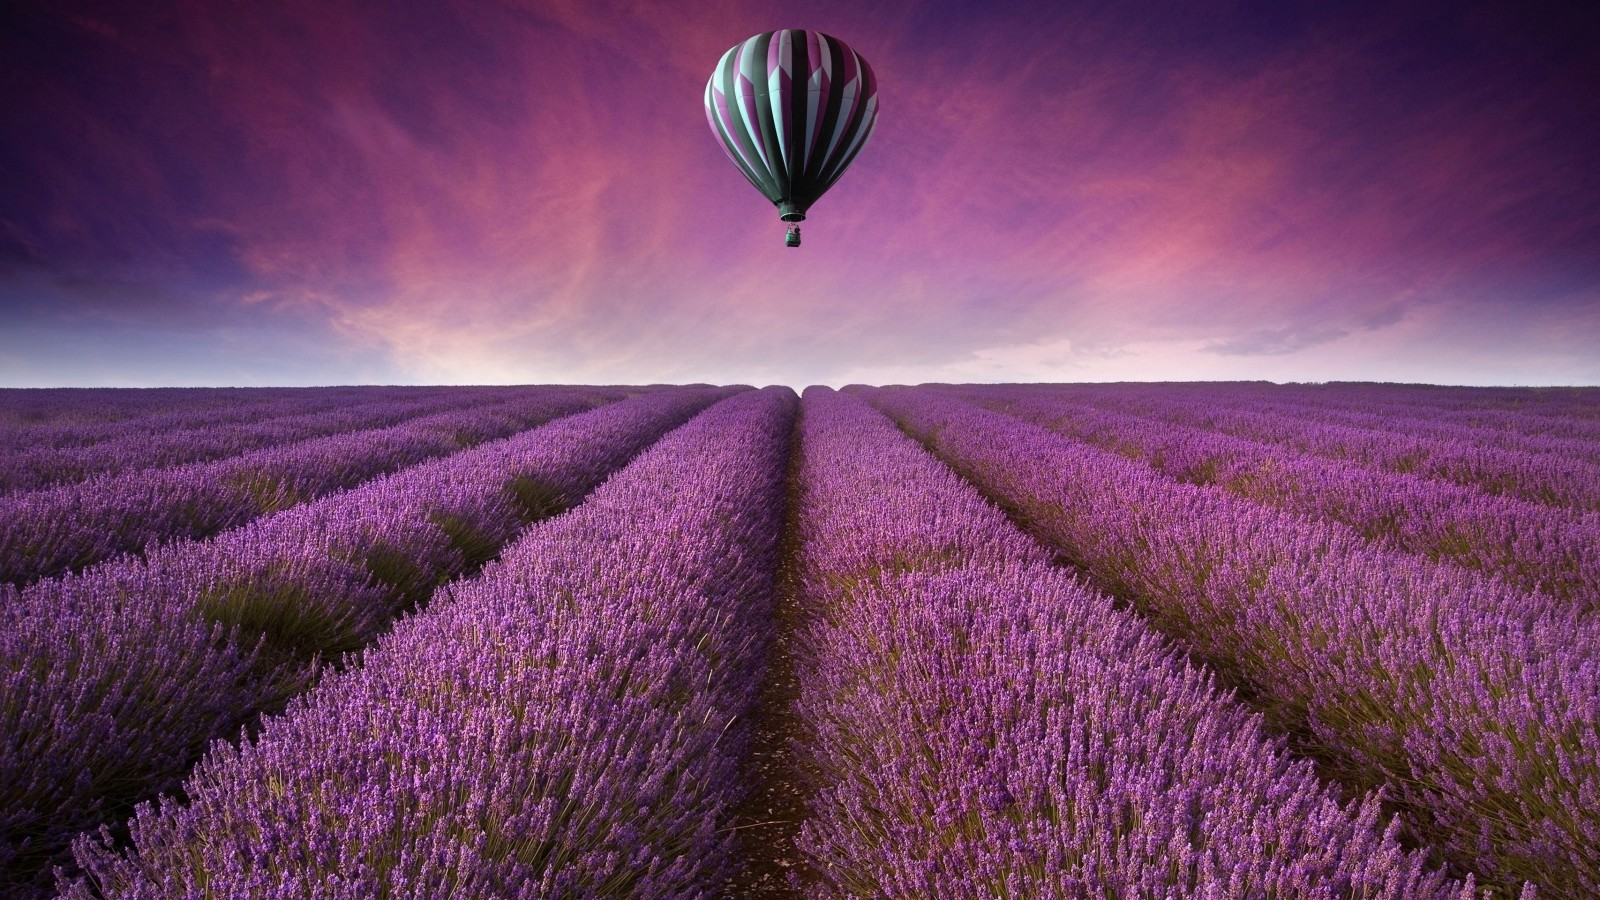 Hot Air Balloon Over Lavender Field Wallpaper for Desktop 1600x900